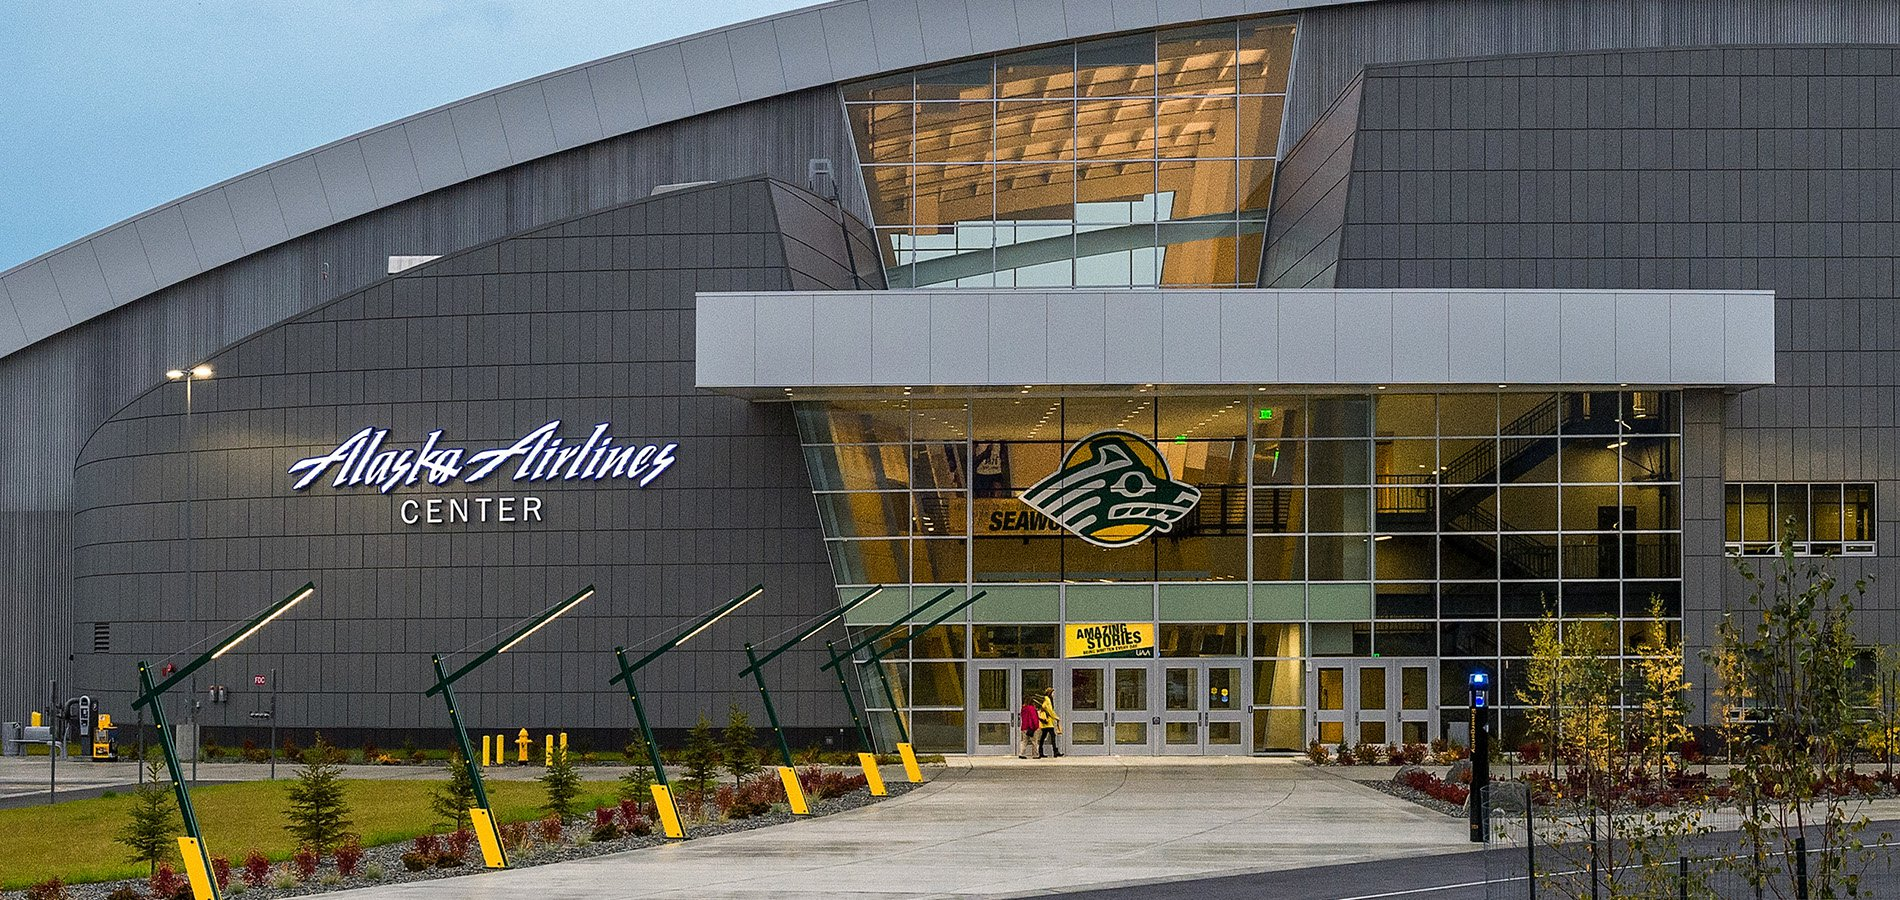 2019 Armed Forces Classic To Be Played At Alaska Airlines